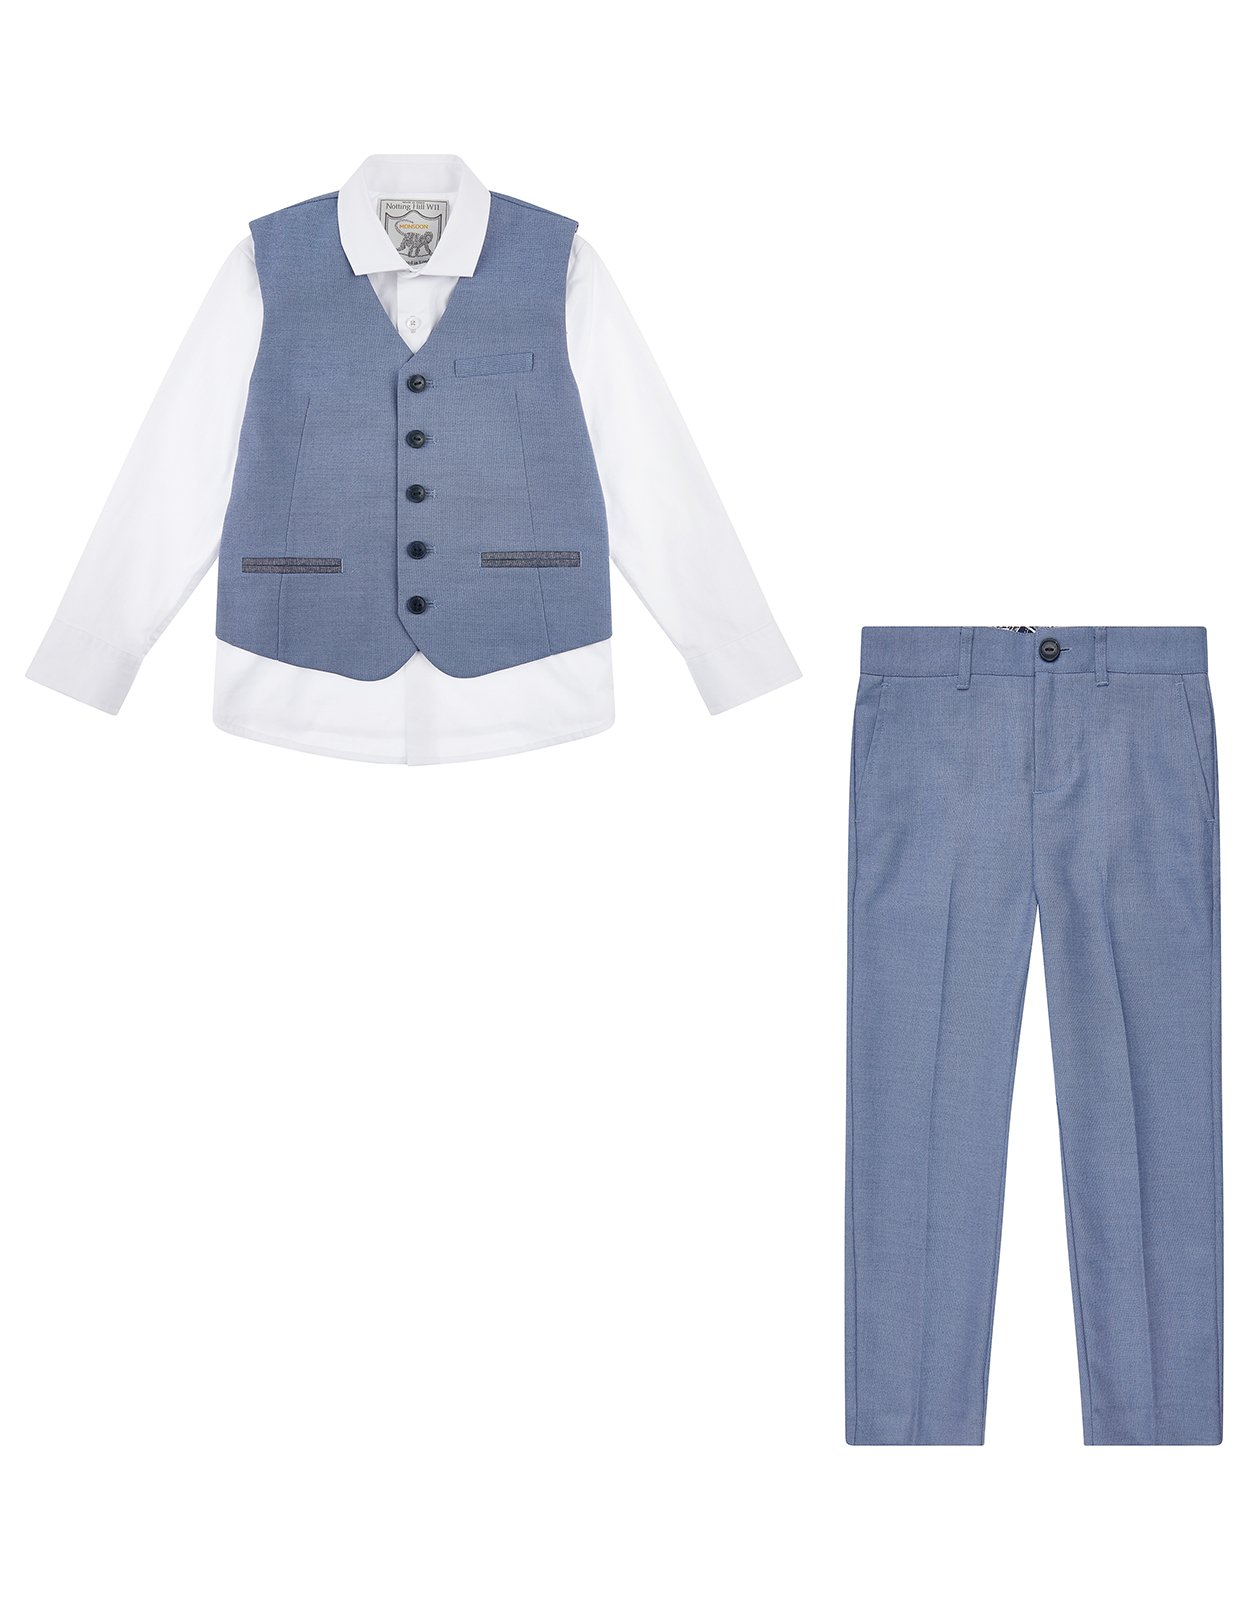 Monsoon Lane 3PC Suit Set - boys - 8 Years